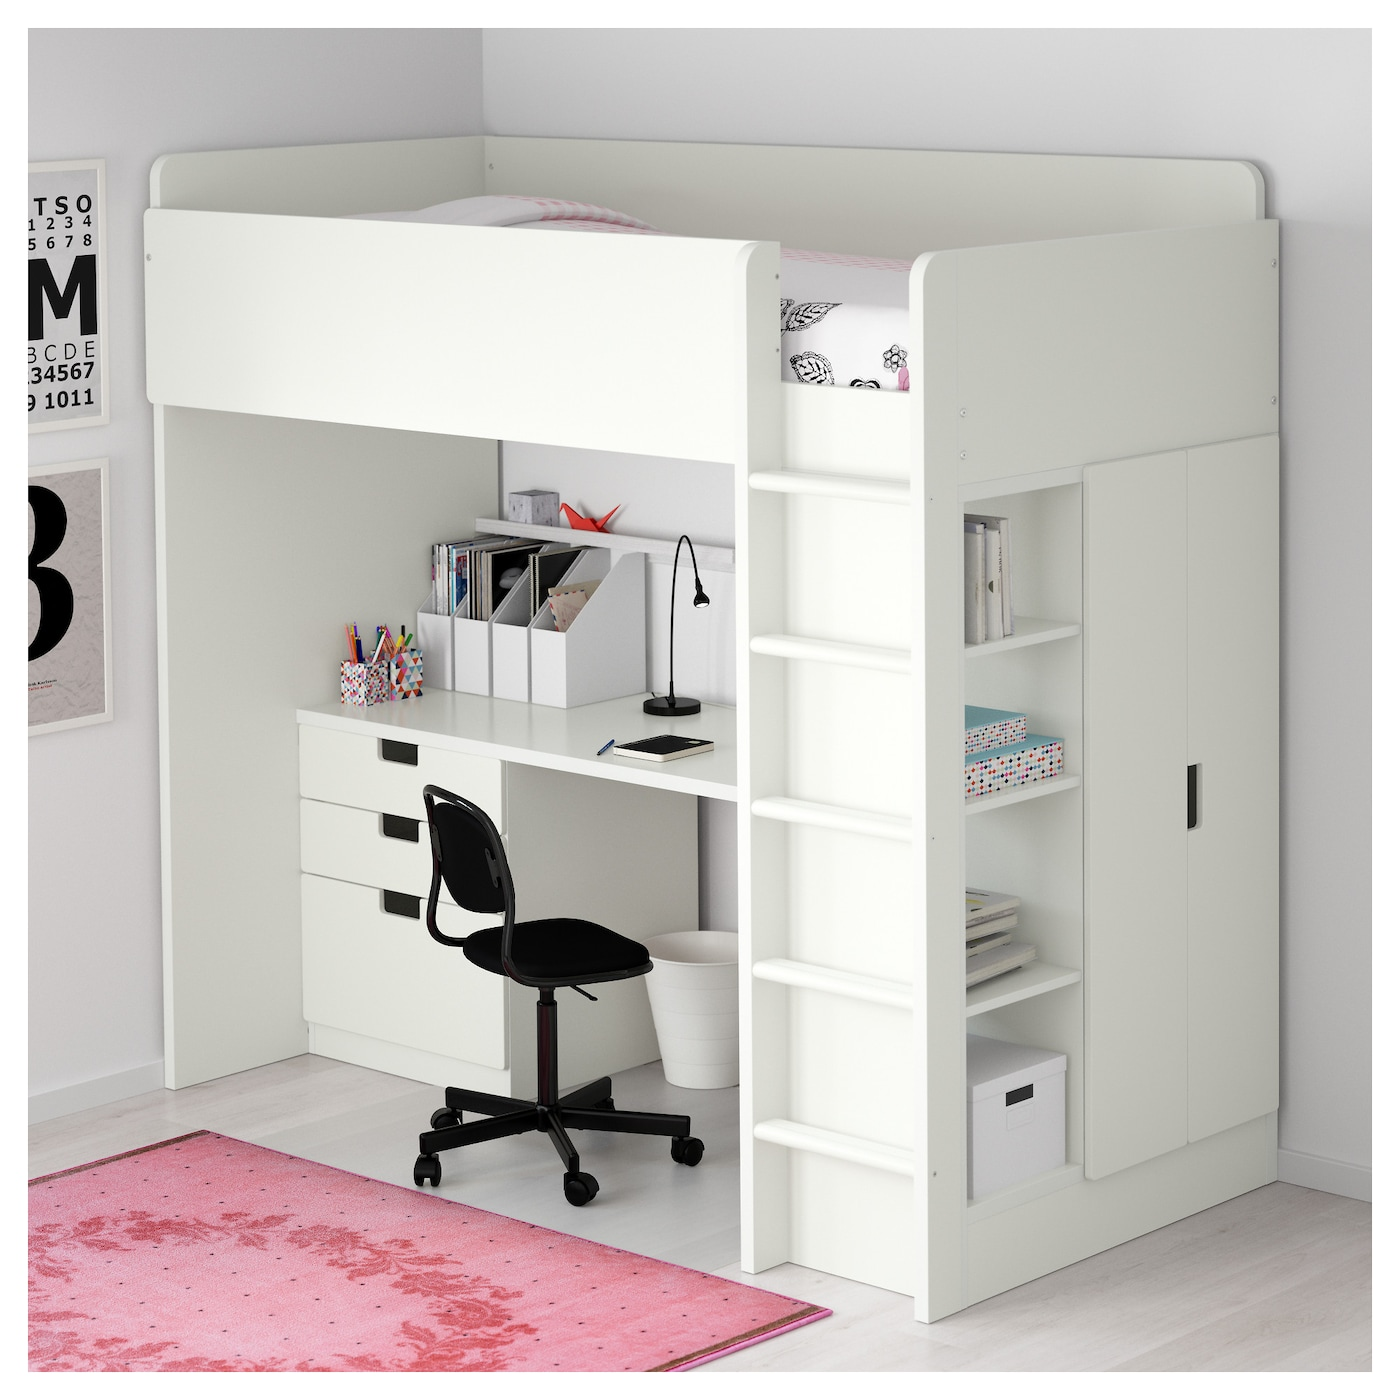 stuva loft bed combo w 3 drawers 2 doors white 207x99x193 cm ikea. Black Bedroom Furniture Sets. Home Design Ideas